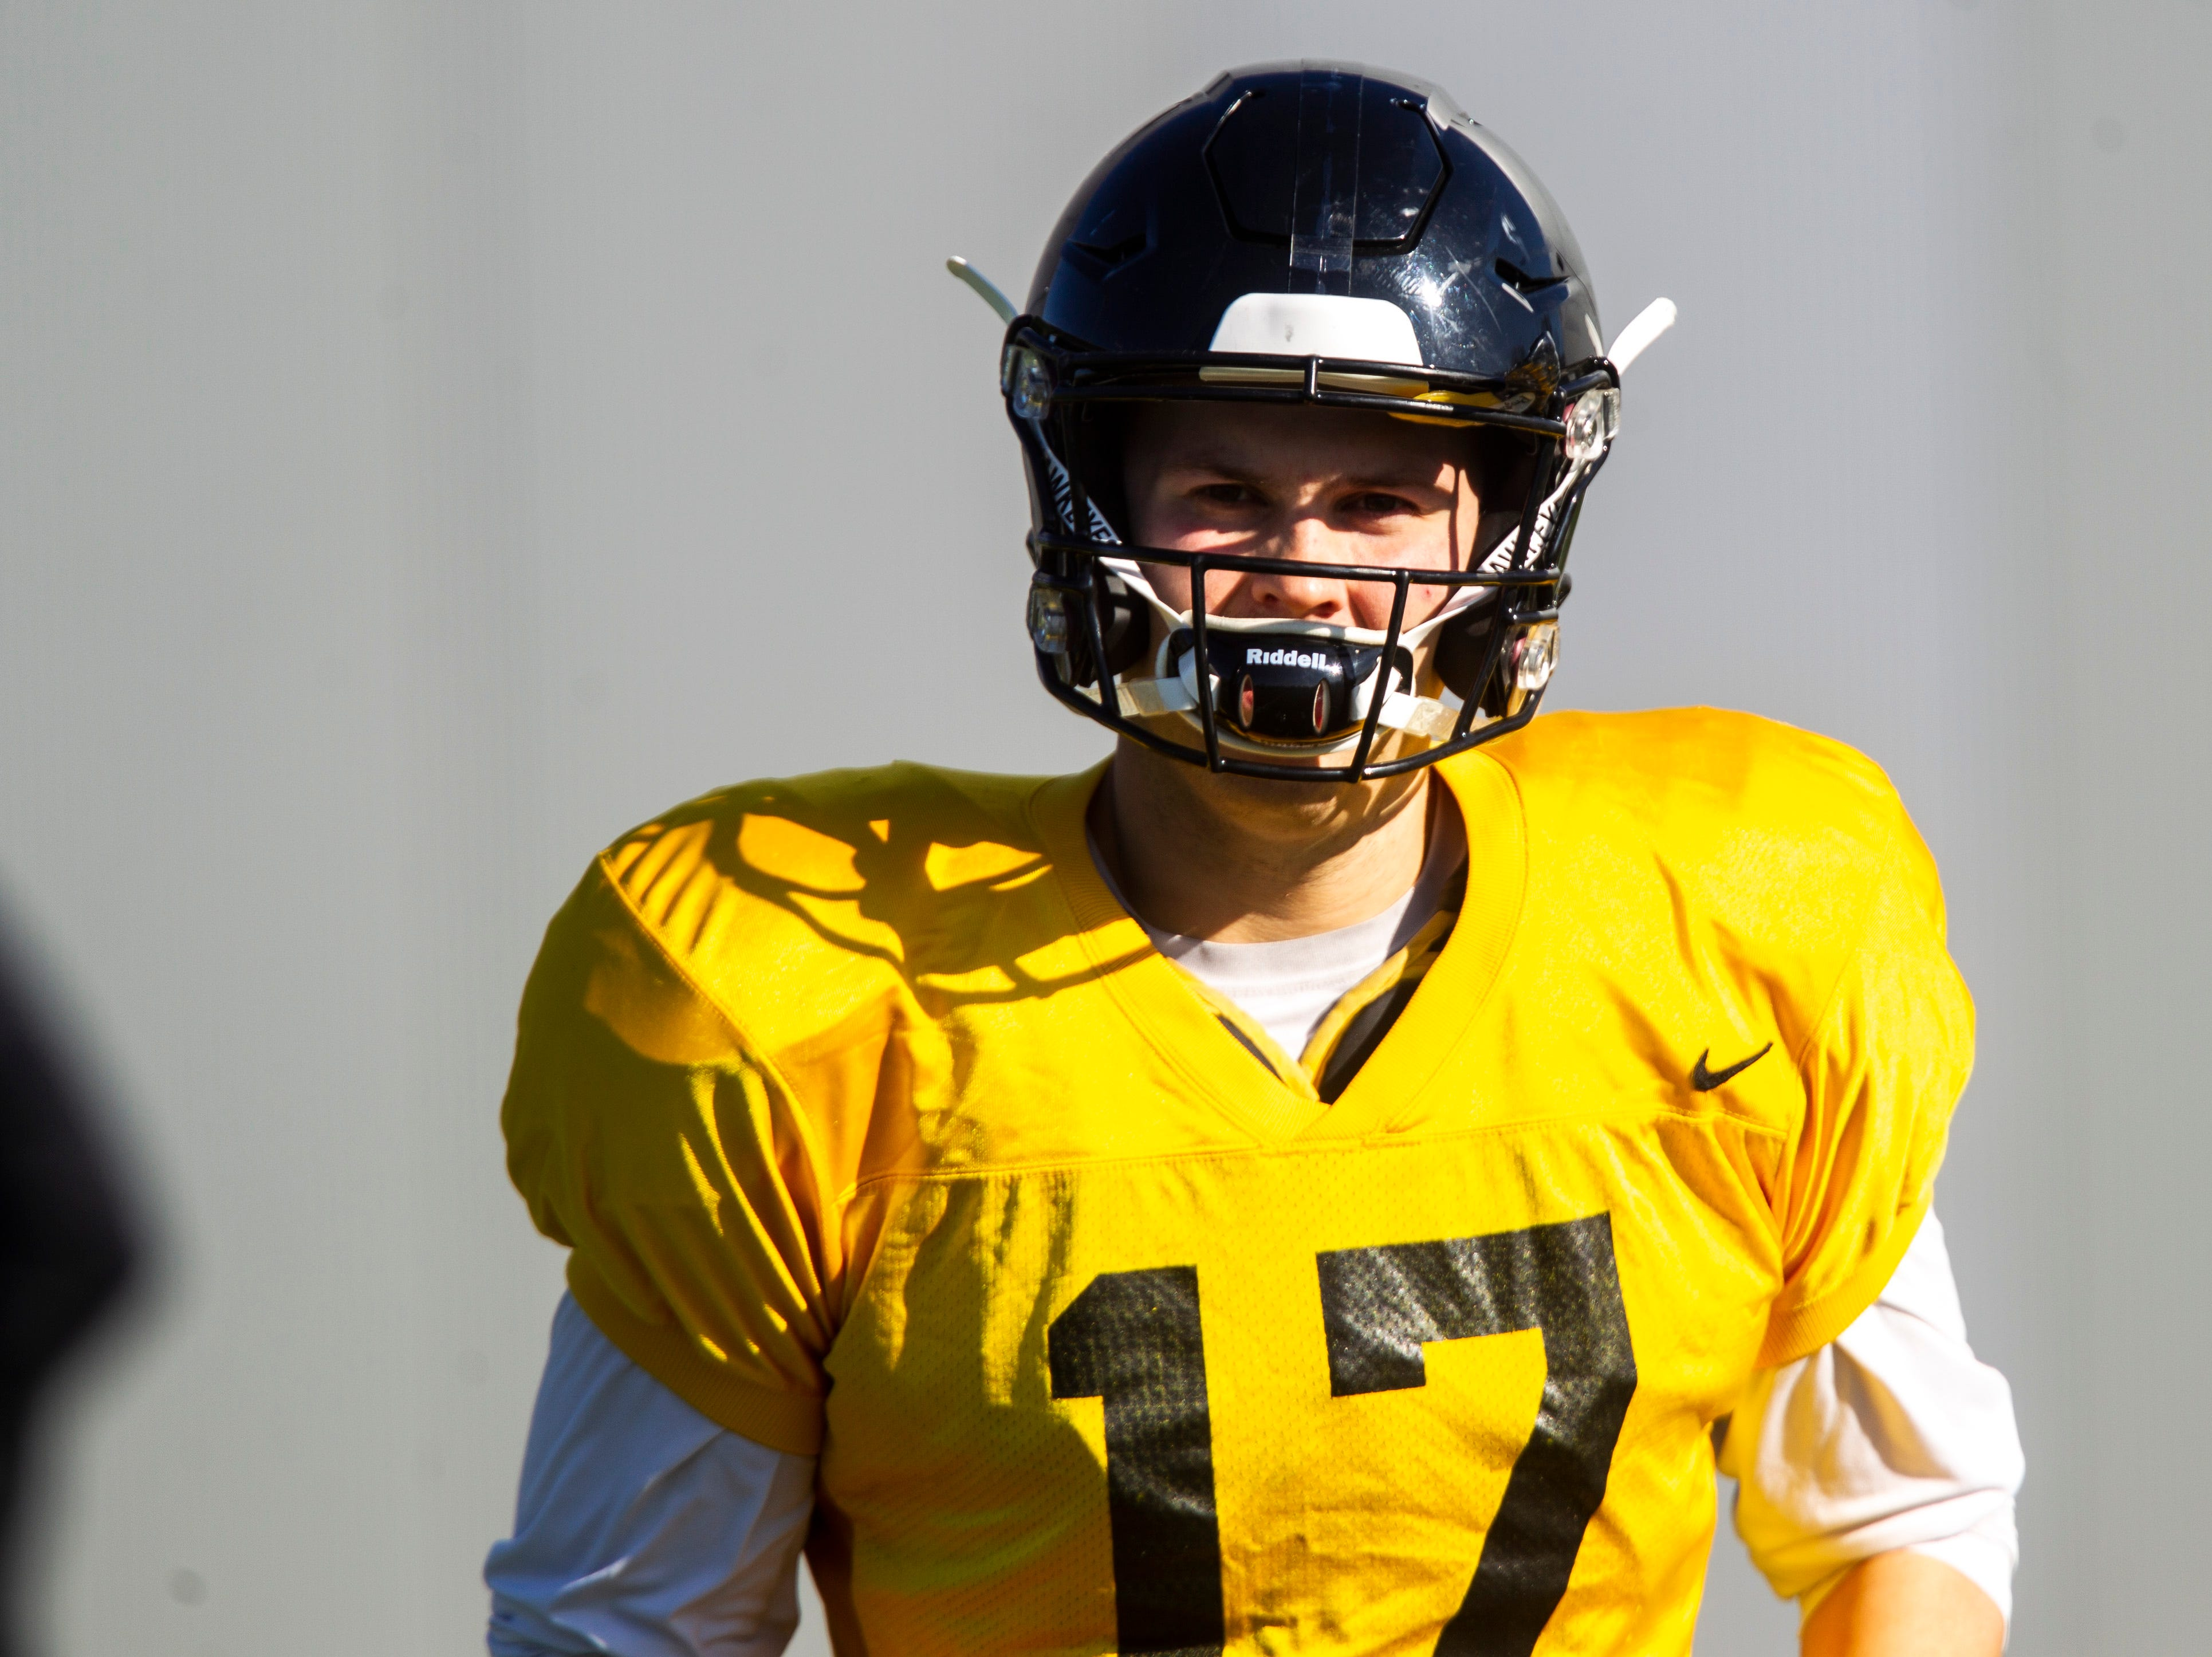 Iowa quarterback Ryan Schmidt (17) is pictured during the final spring football practice, Friday, April 26, 2019, at the University of Iowa outdoor practice facility in Iowa City, Iowa.